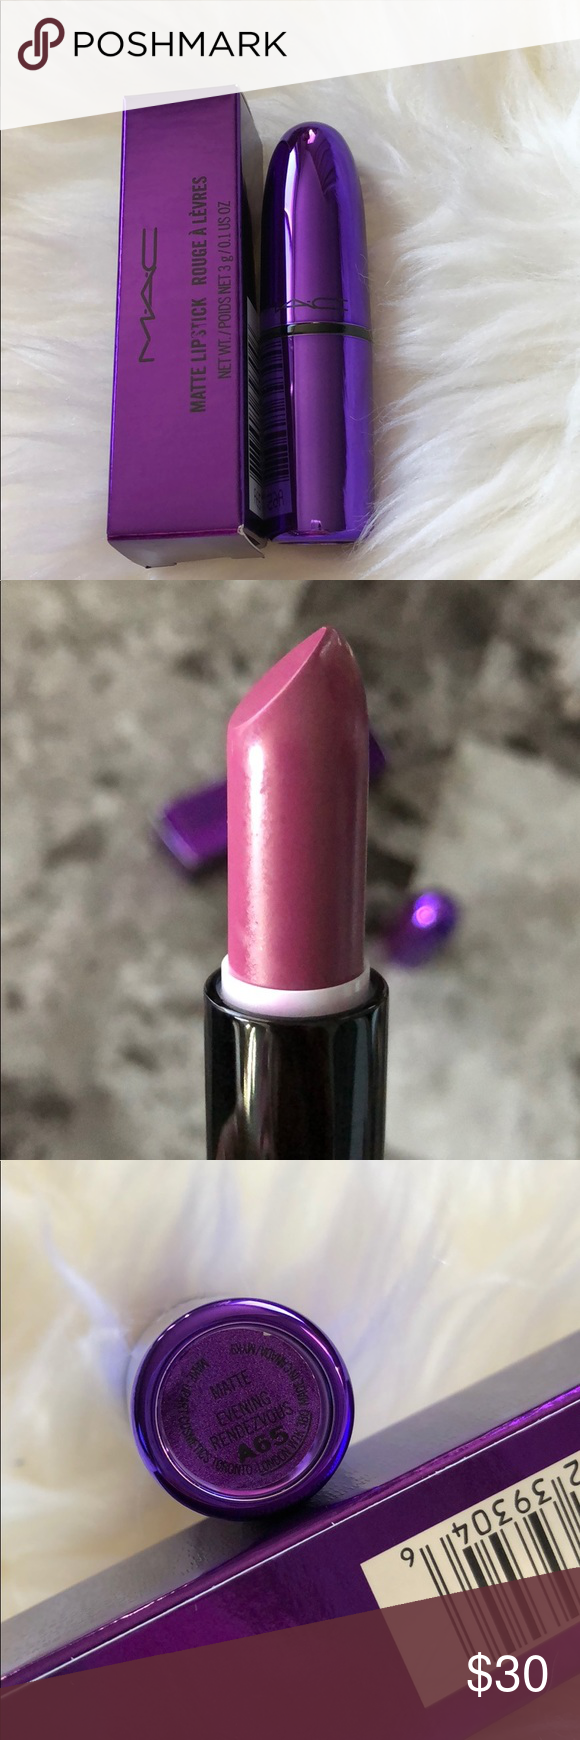 Evening Rendezvous Mac Lipstick NWT Maquillage mac